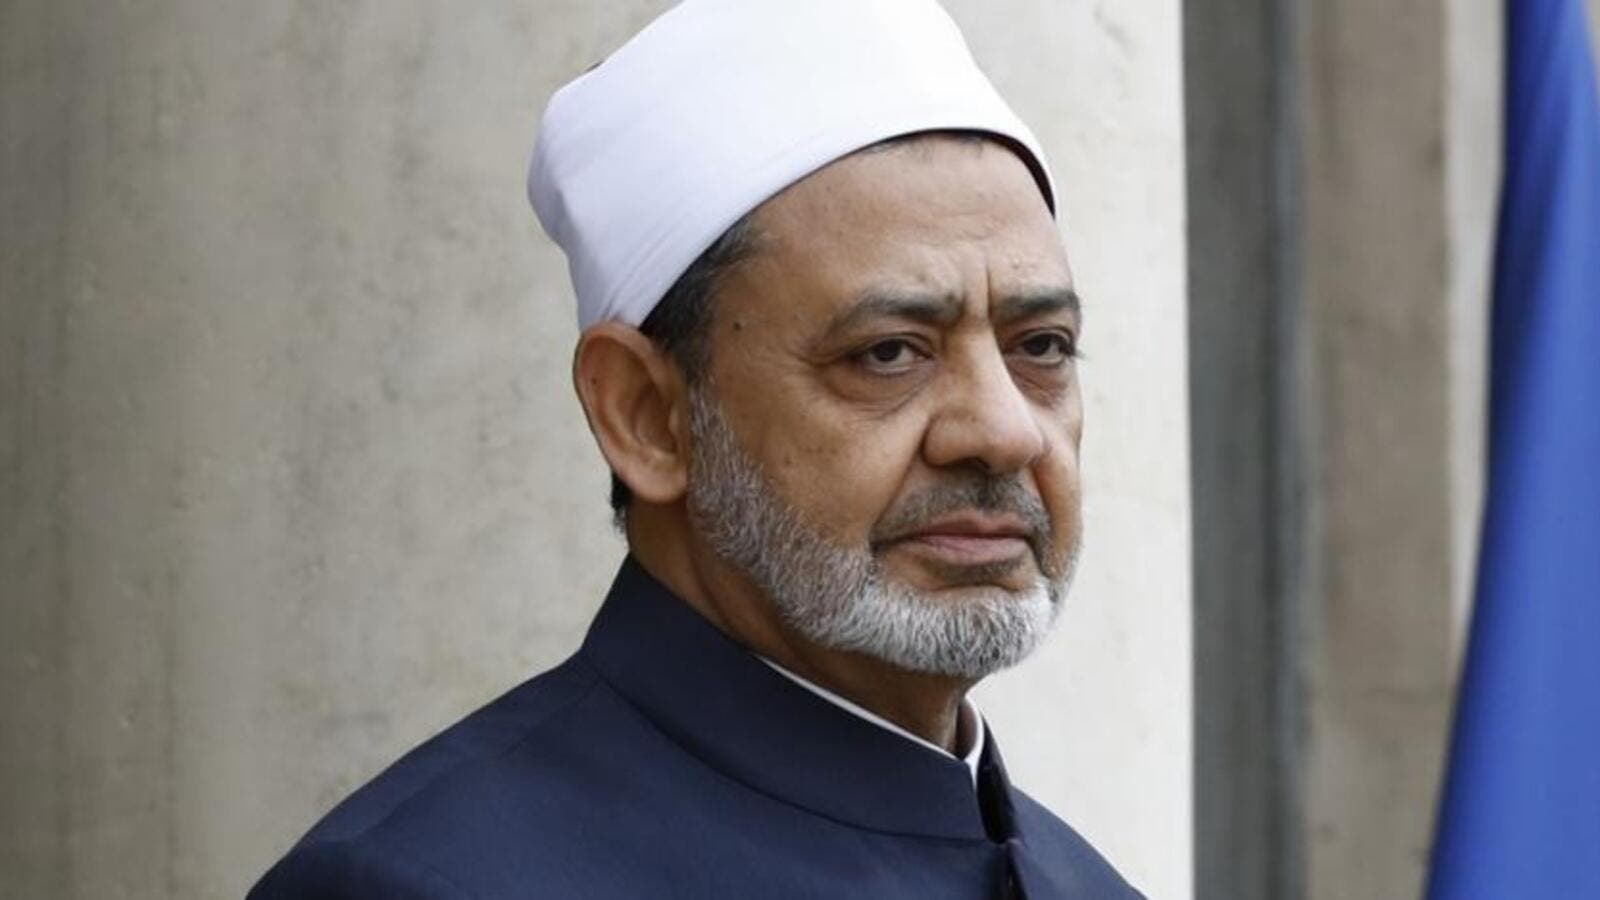 Grand Imam of Al-Azhar Sheikh Ahmed al-Tayeb. (AFP)